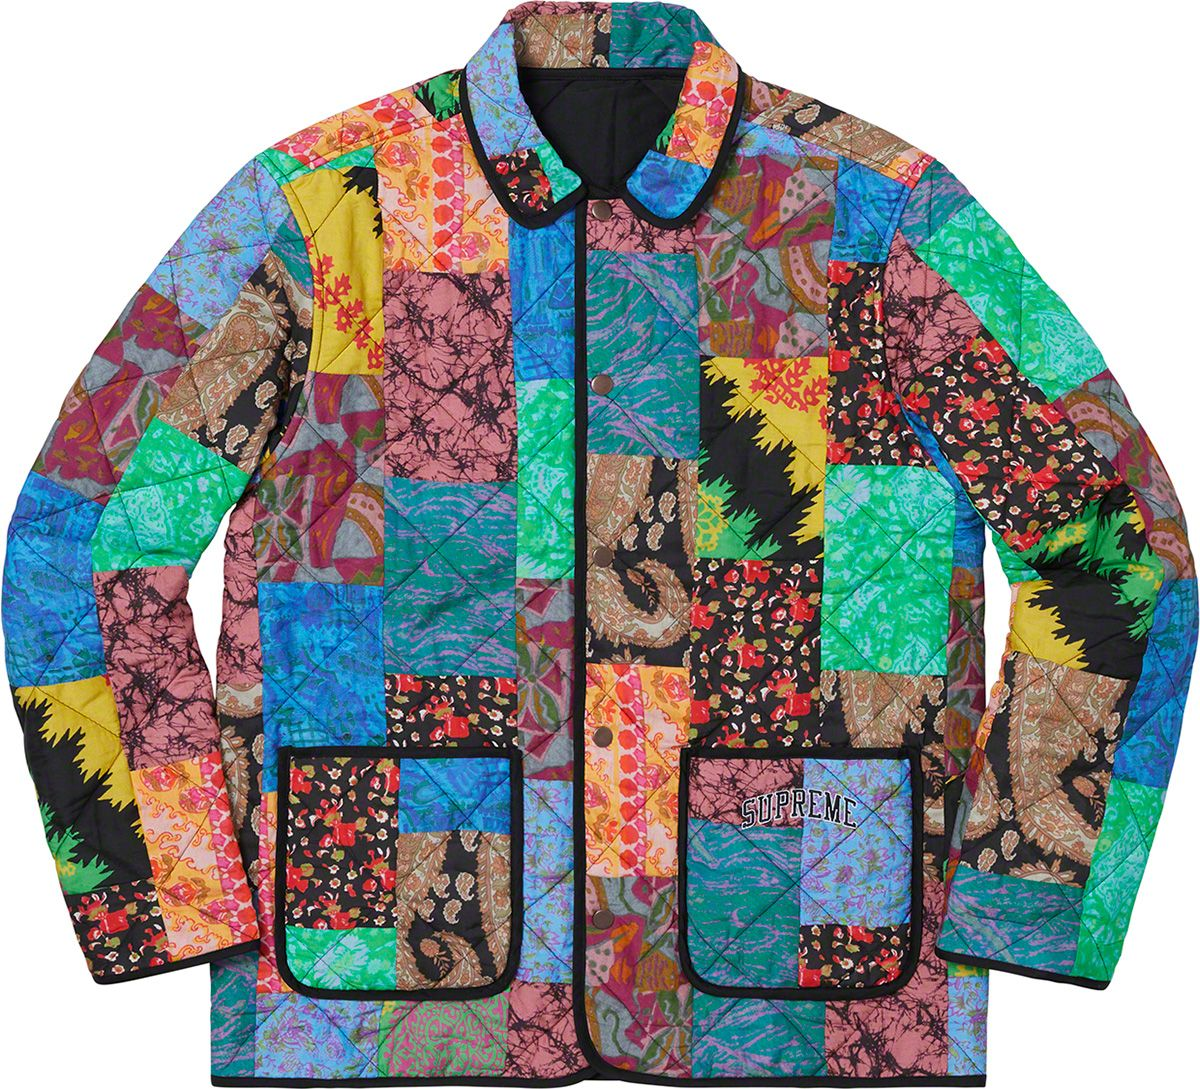 296b71a14 Supreme Reversible Patchwork Quilted Jacket | Clothing Inspiration ...